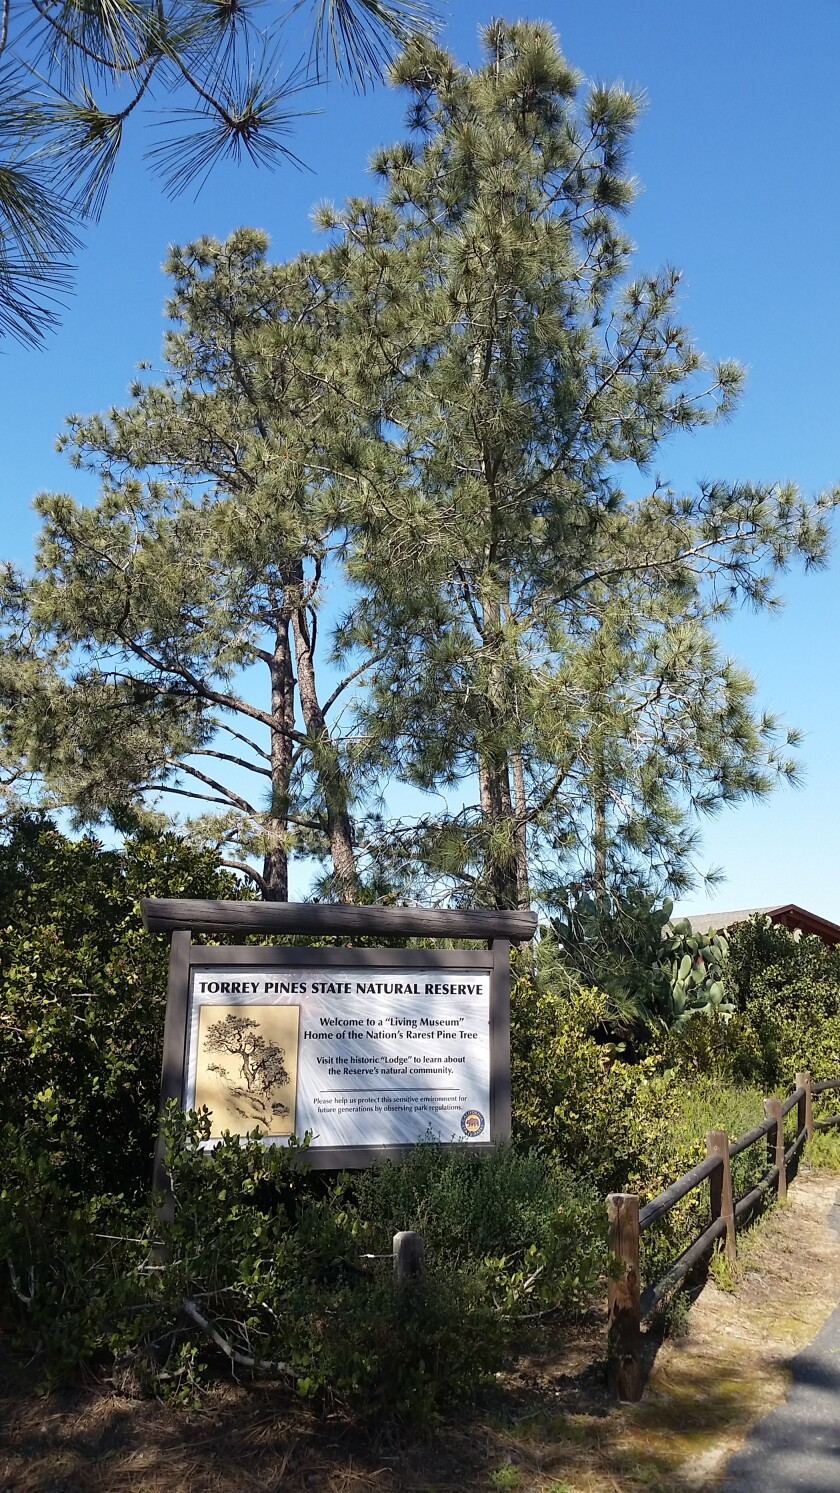 Trees at Torrey Pines State Natural Reserve. The reserve remains closed during the pandemic.